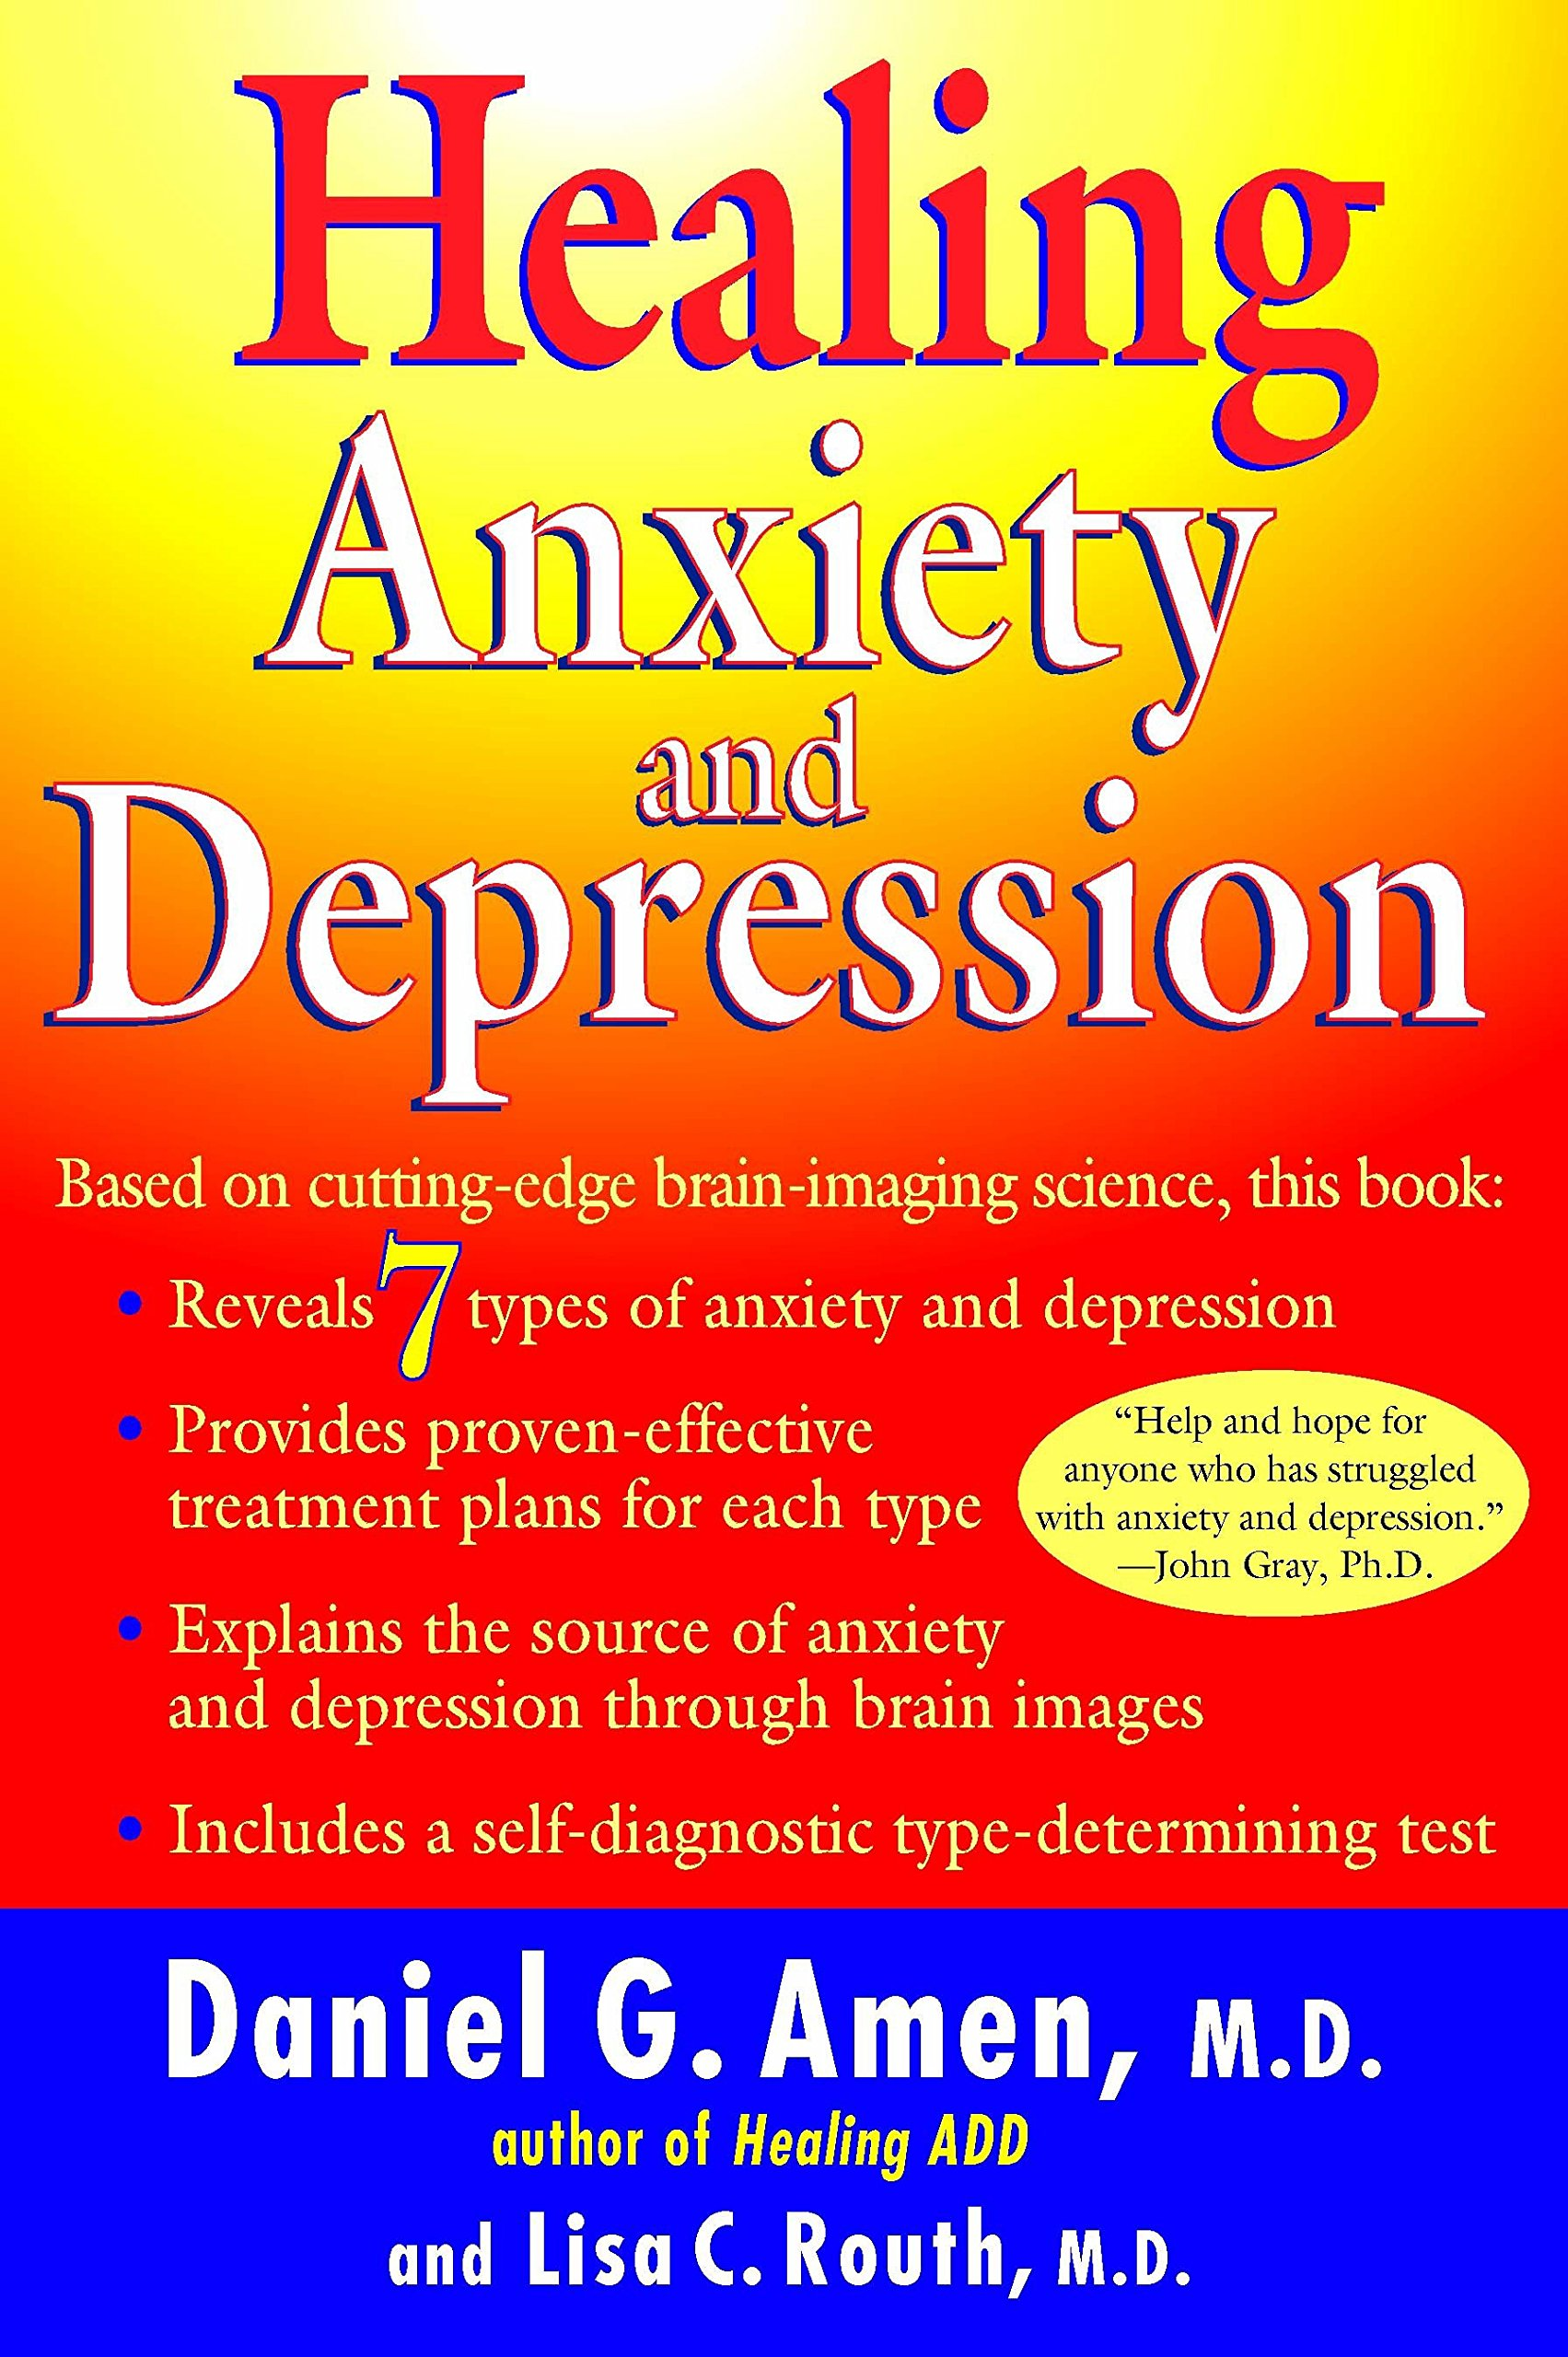 what is anxiety and depression